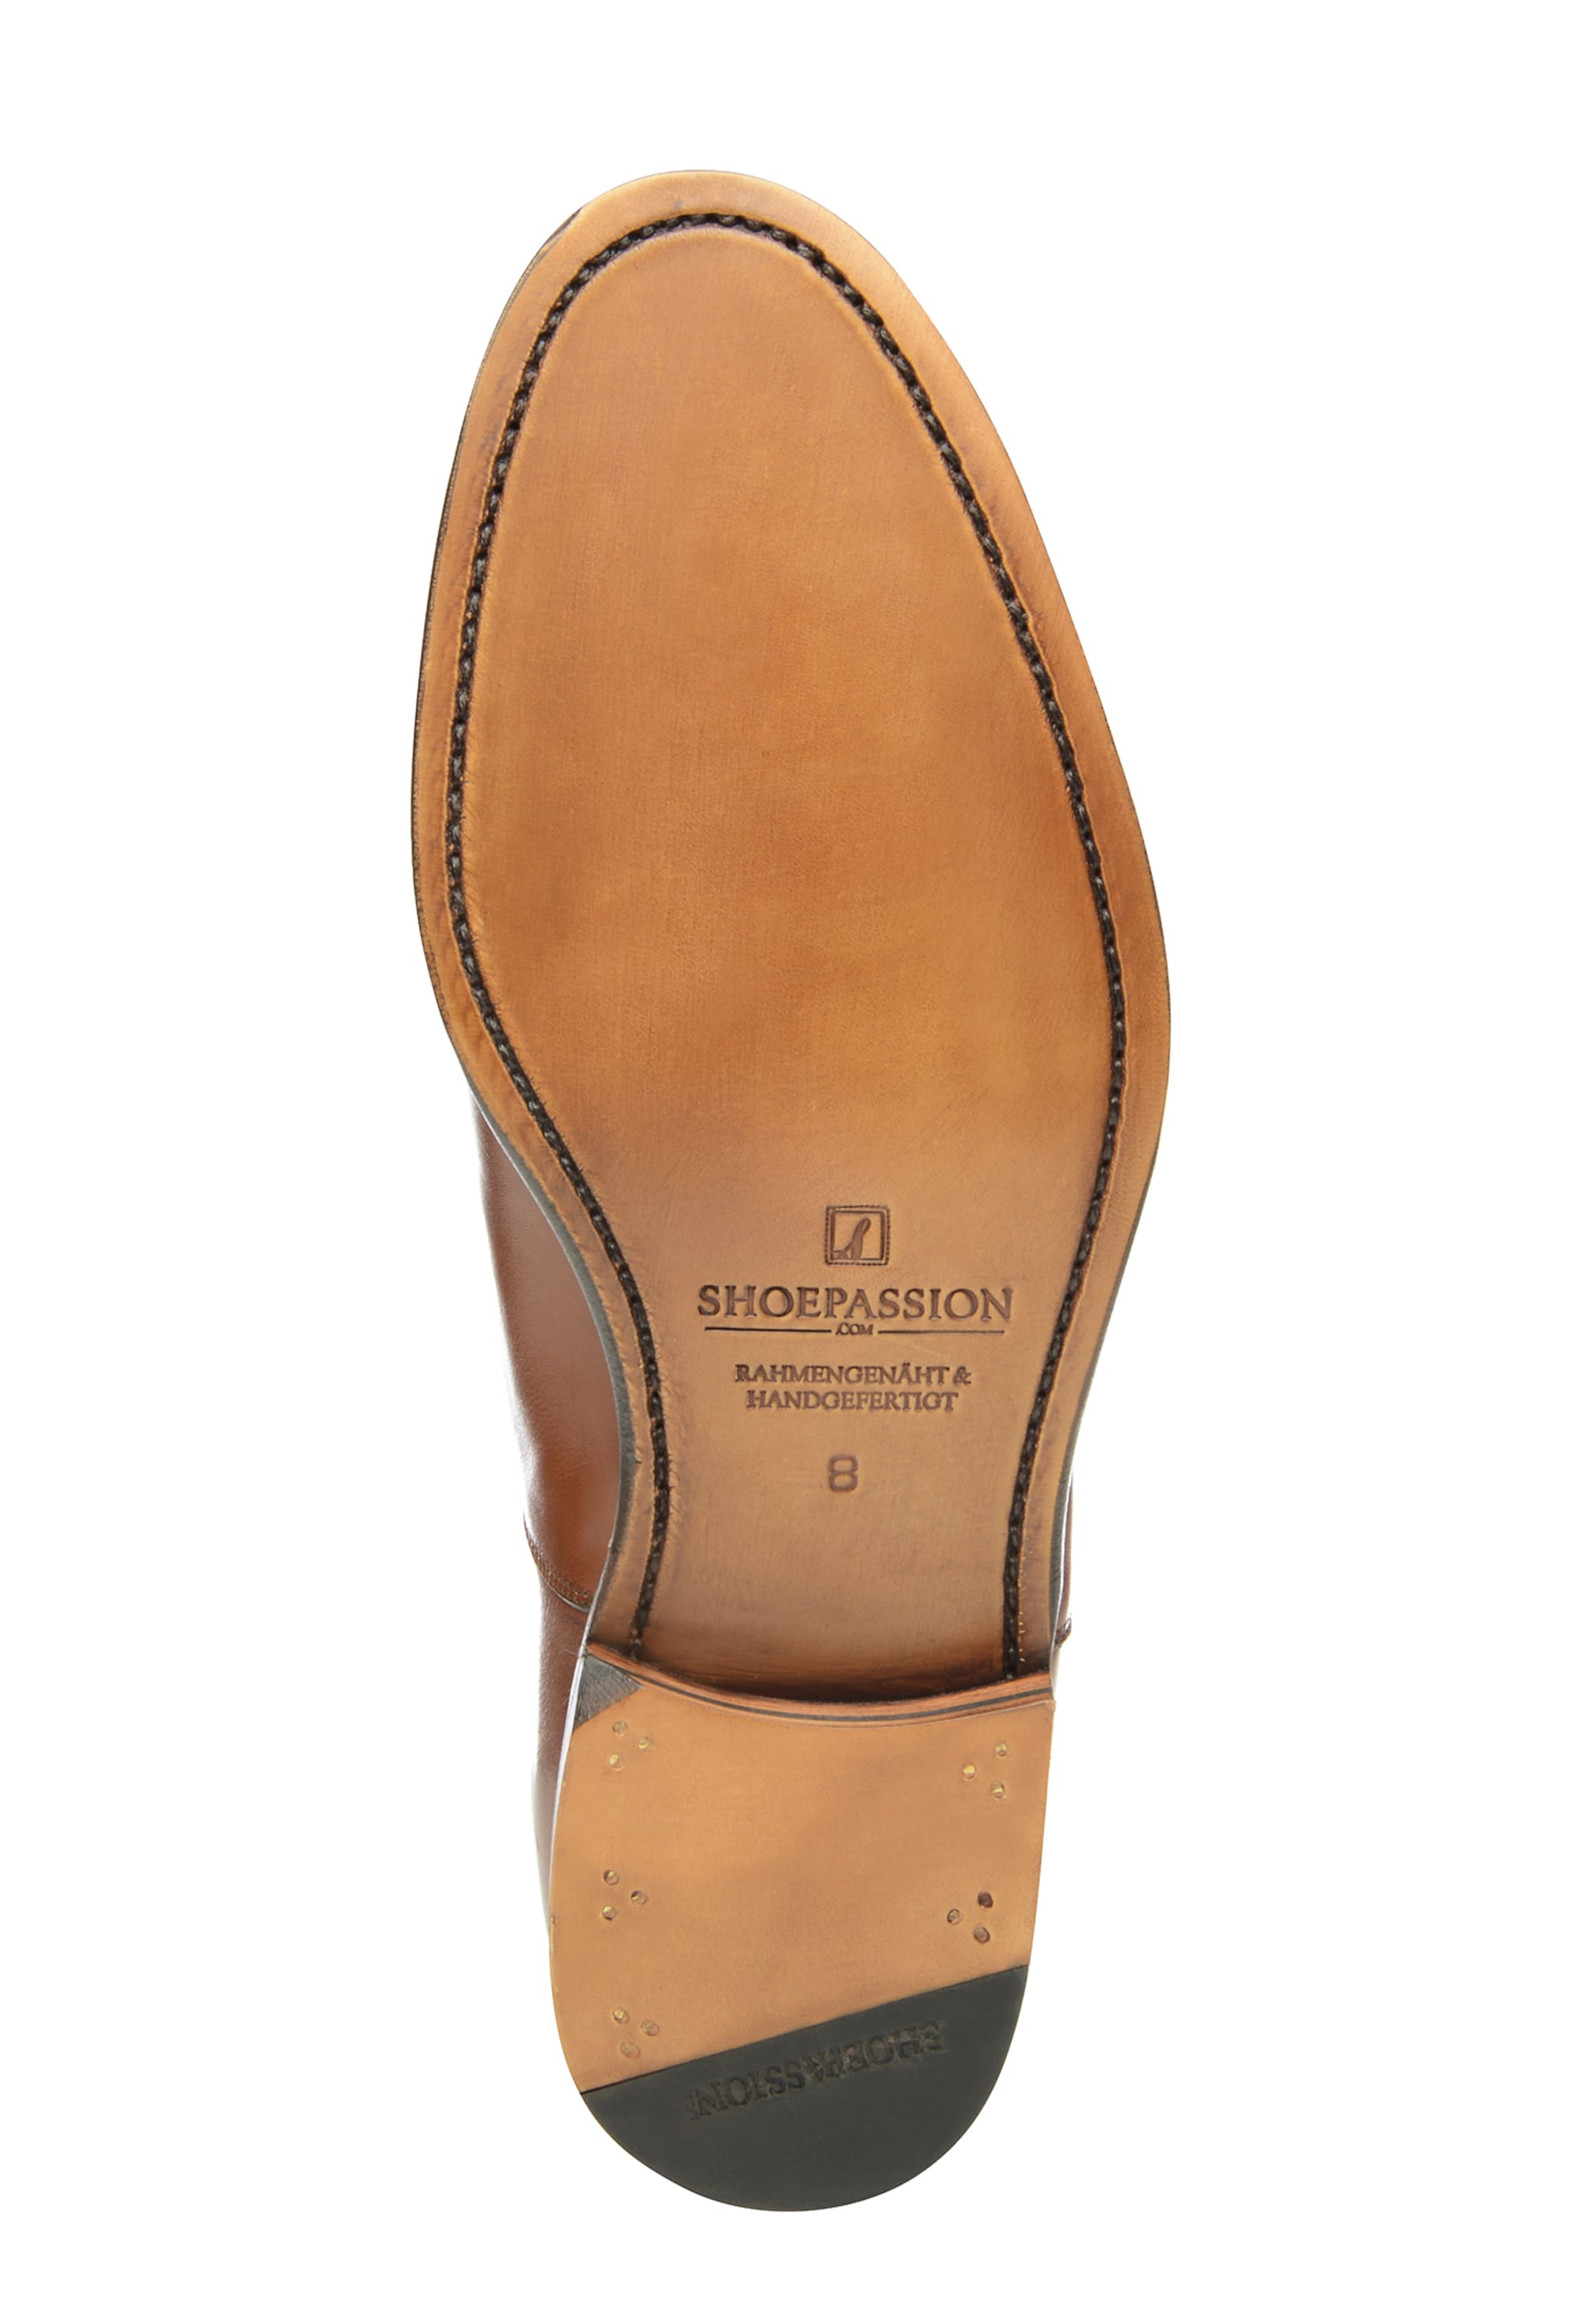 Cognac Shoepassion Businessschuhe 'no545' Shoepassion In Cognac 'no545' Businessschuhe In Shoepassion 2IEW9YHeDb